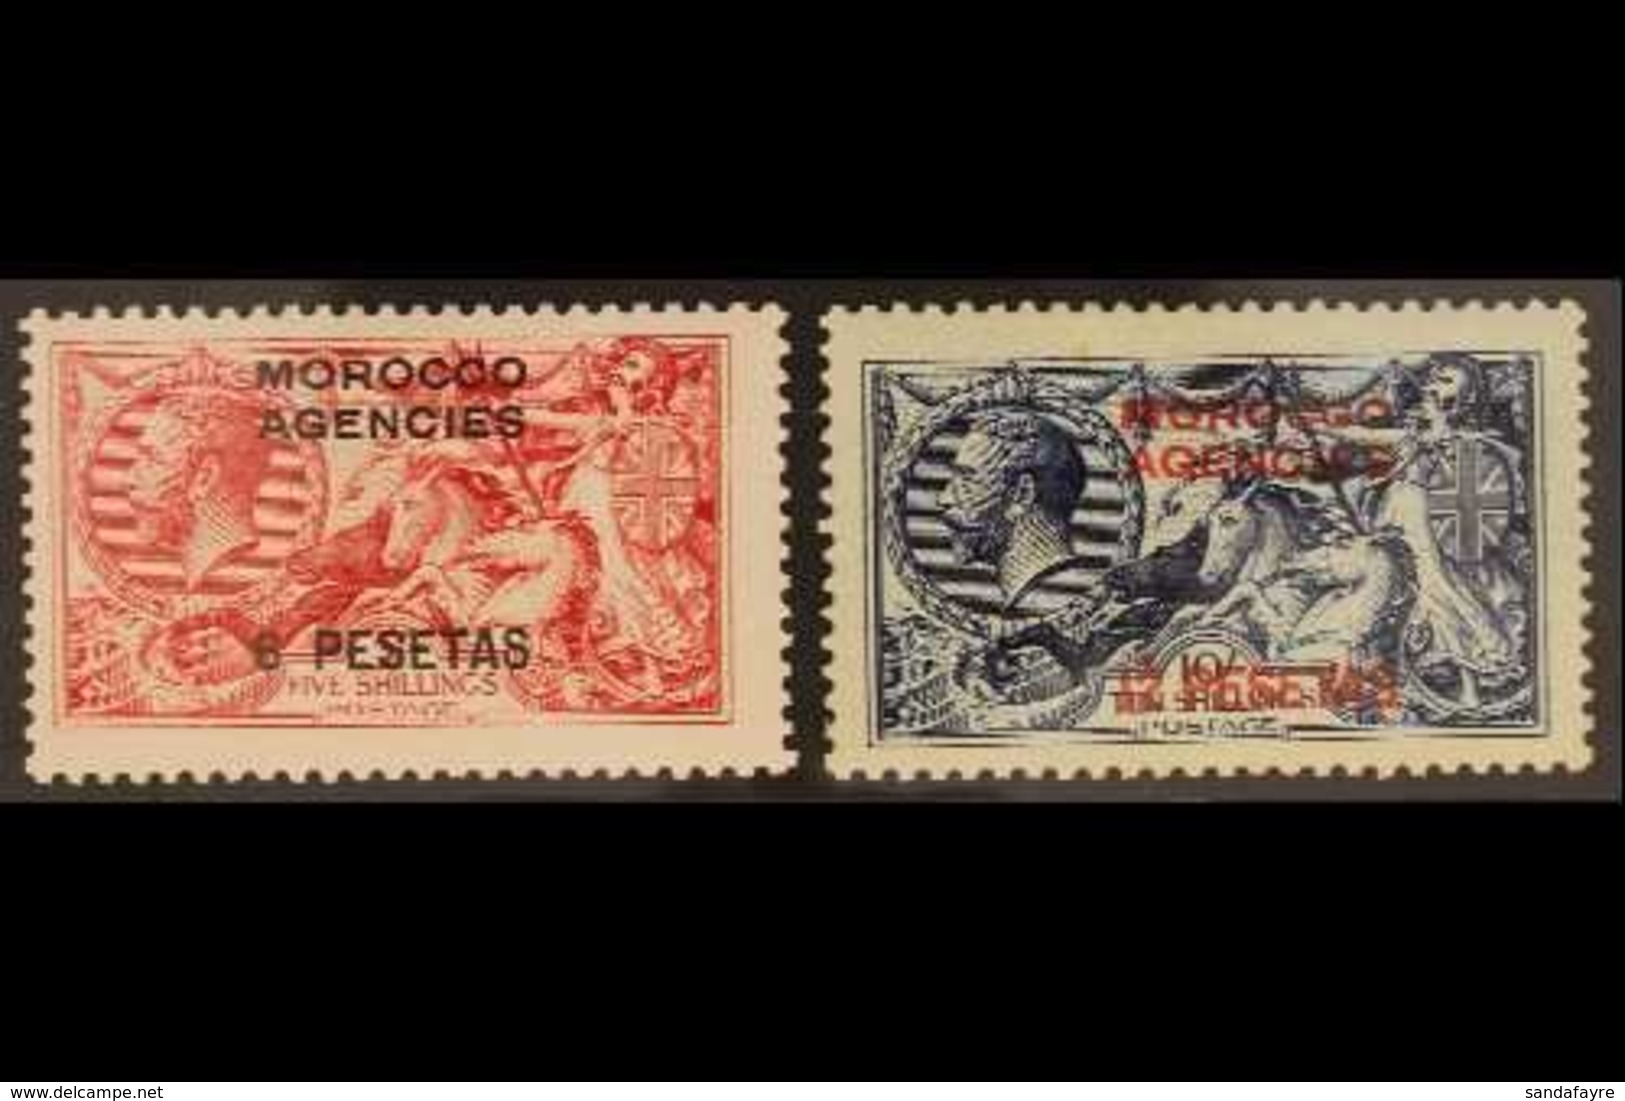 SPANISH CURRENCY 1914-26 6p On 5s Rose-carmine & 12p On 10s Indigo-blue, Waterlow Printings, SG 137/8, Very Fine Mint (2 - Morocco (1891-1956)